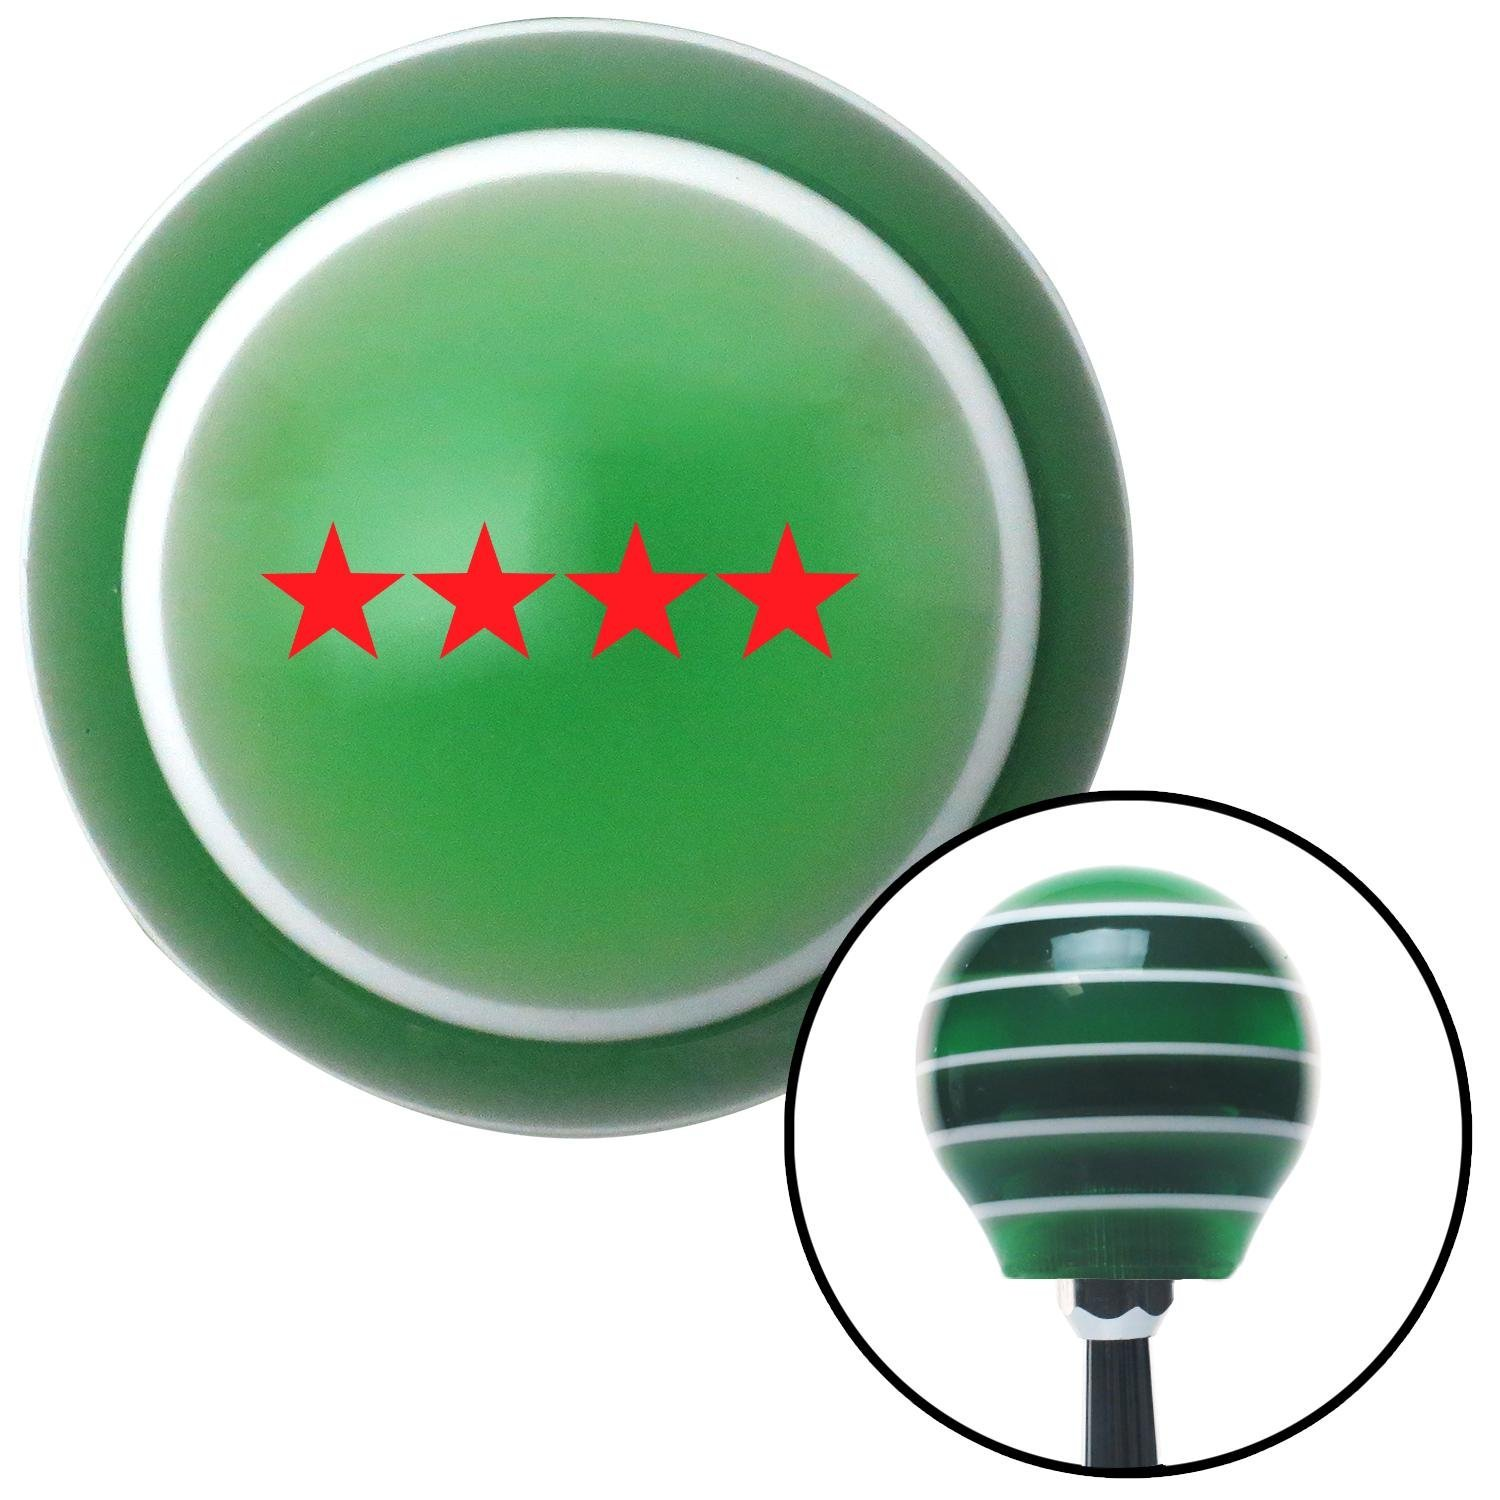 Red Officer 10 - Admiral American Shifter 124926 Green Stripe Shift Knob with M16 x 1.5 Insert